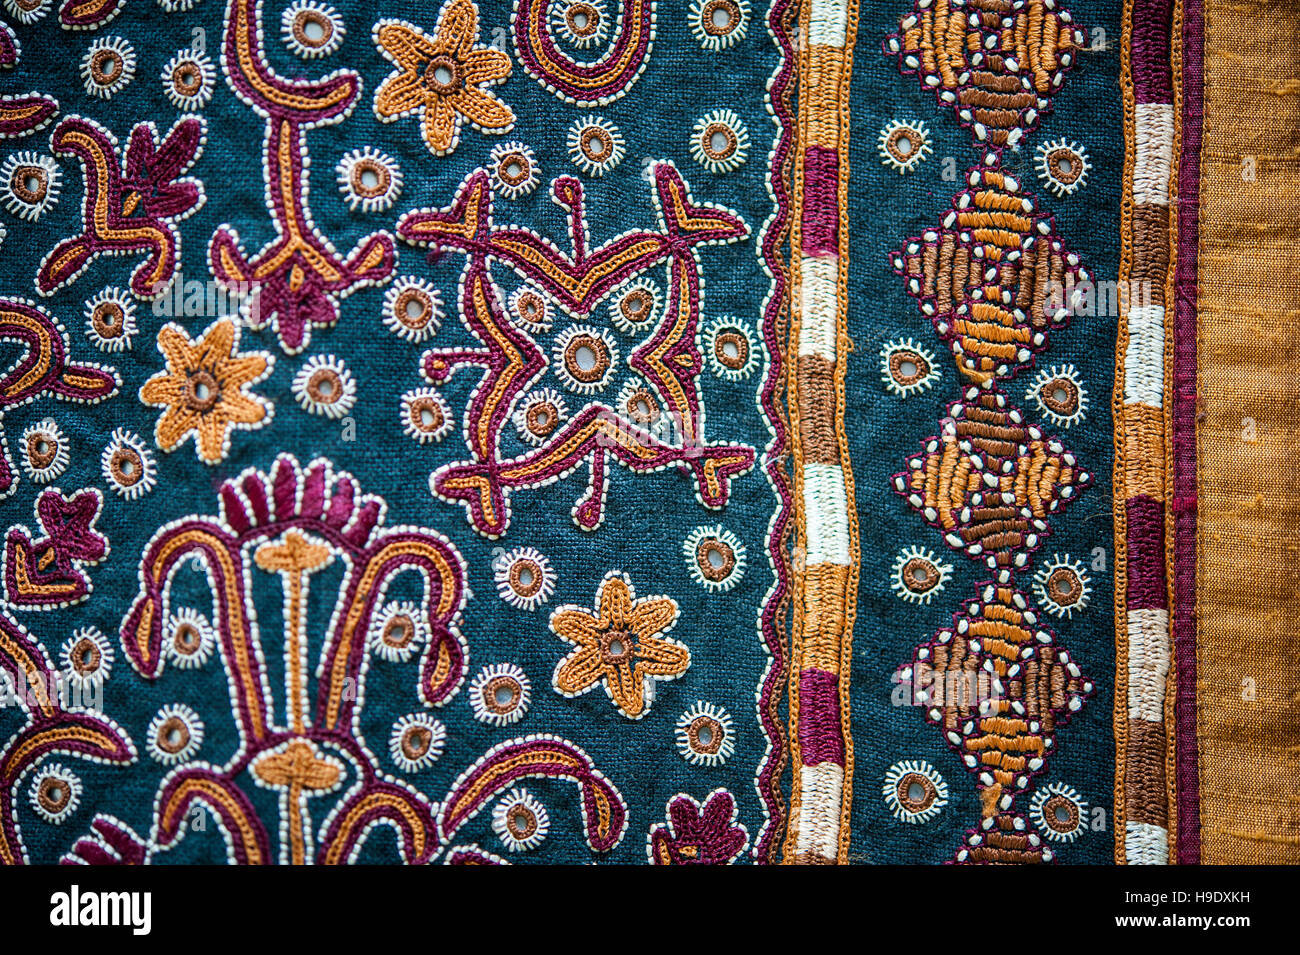 An intricate embroidery at Qasab, a craft woman's cooperative, by the tribal people living along the edges of - Stock Image